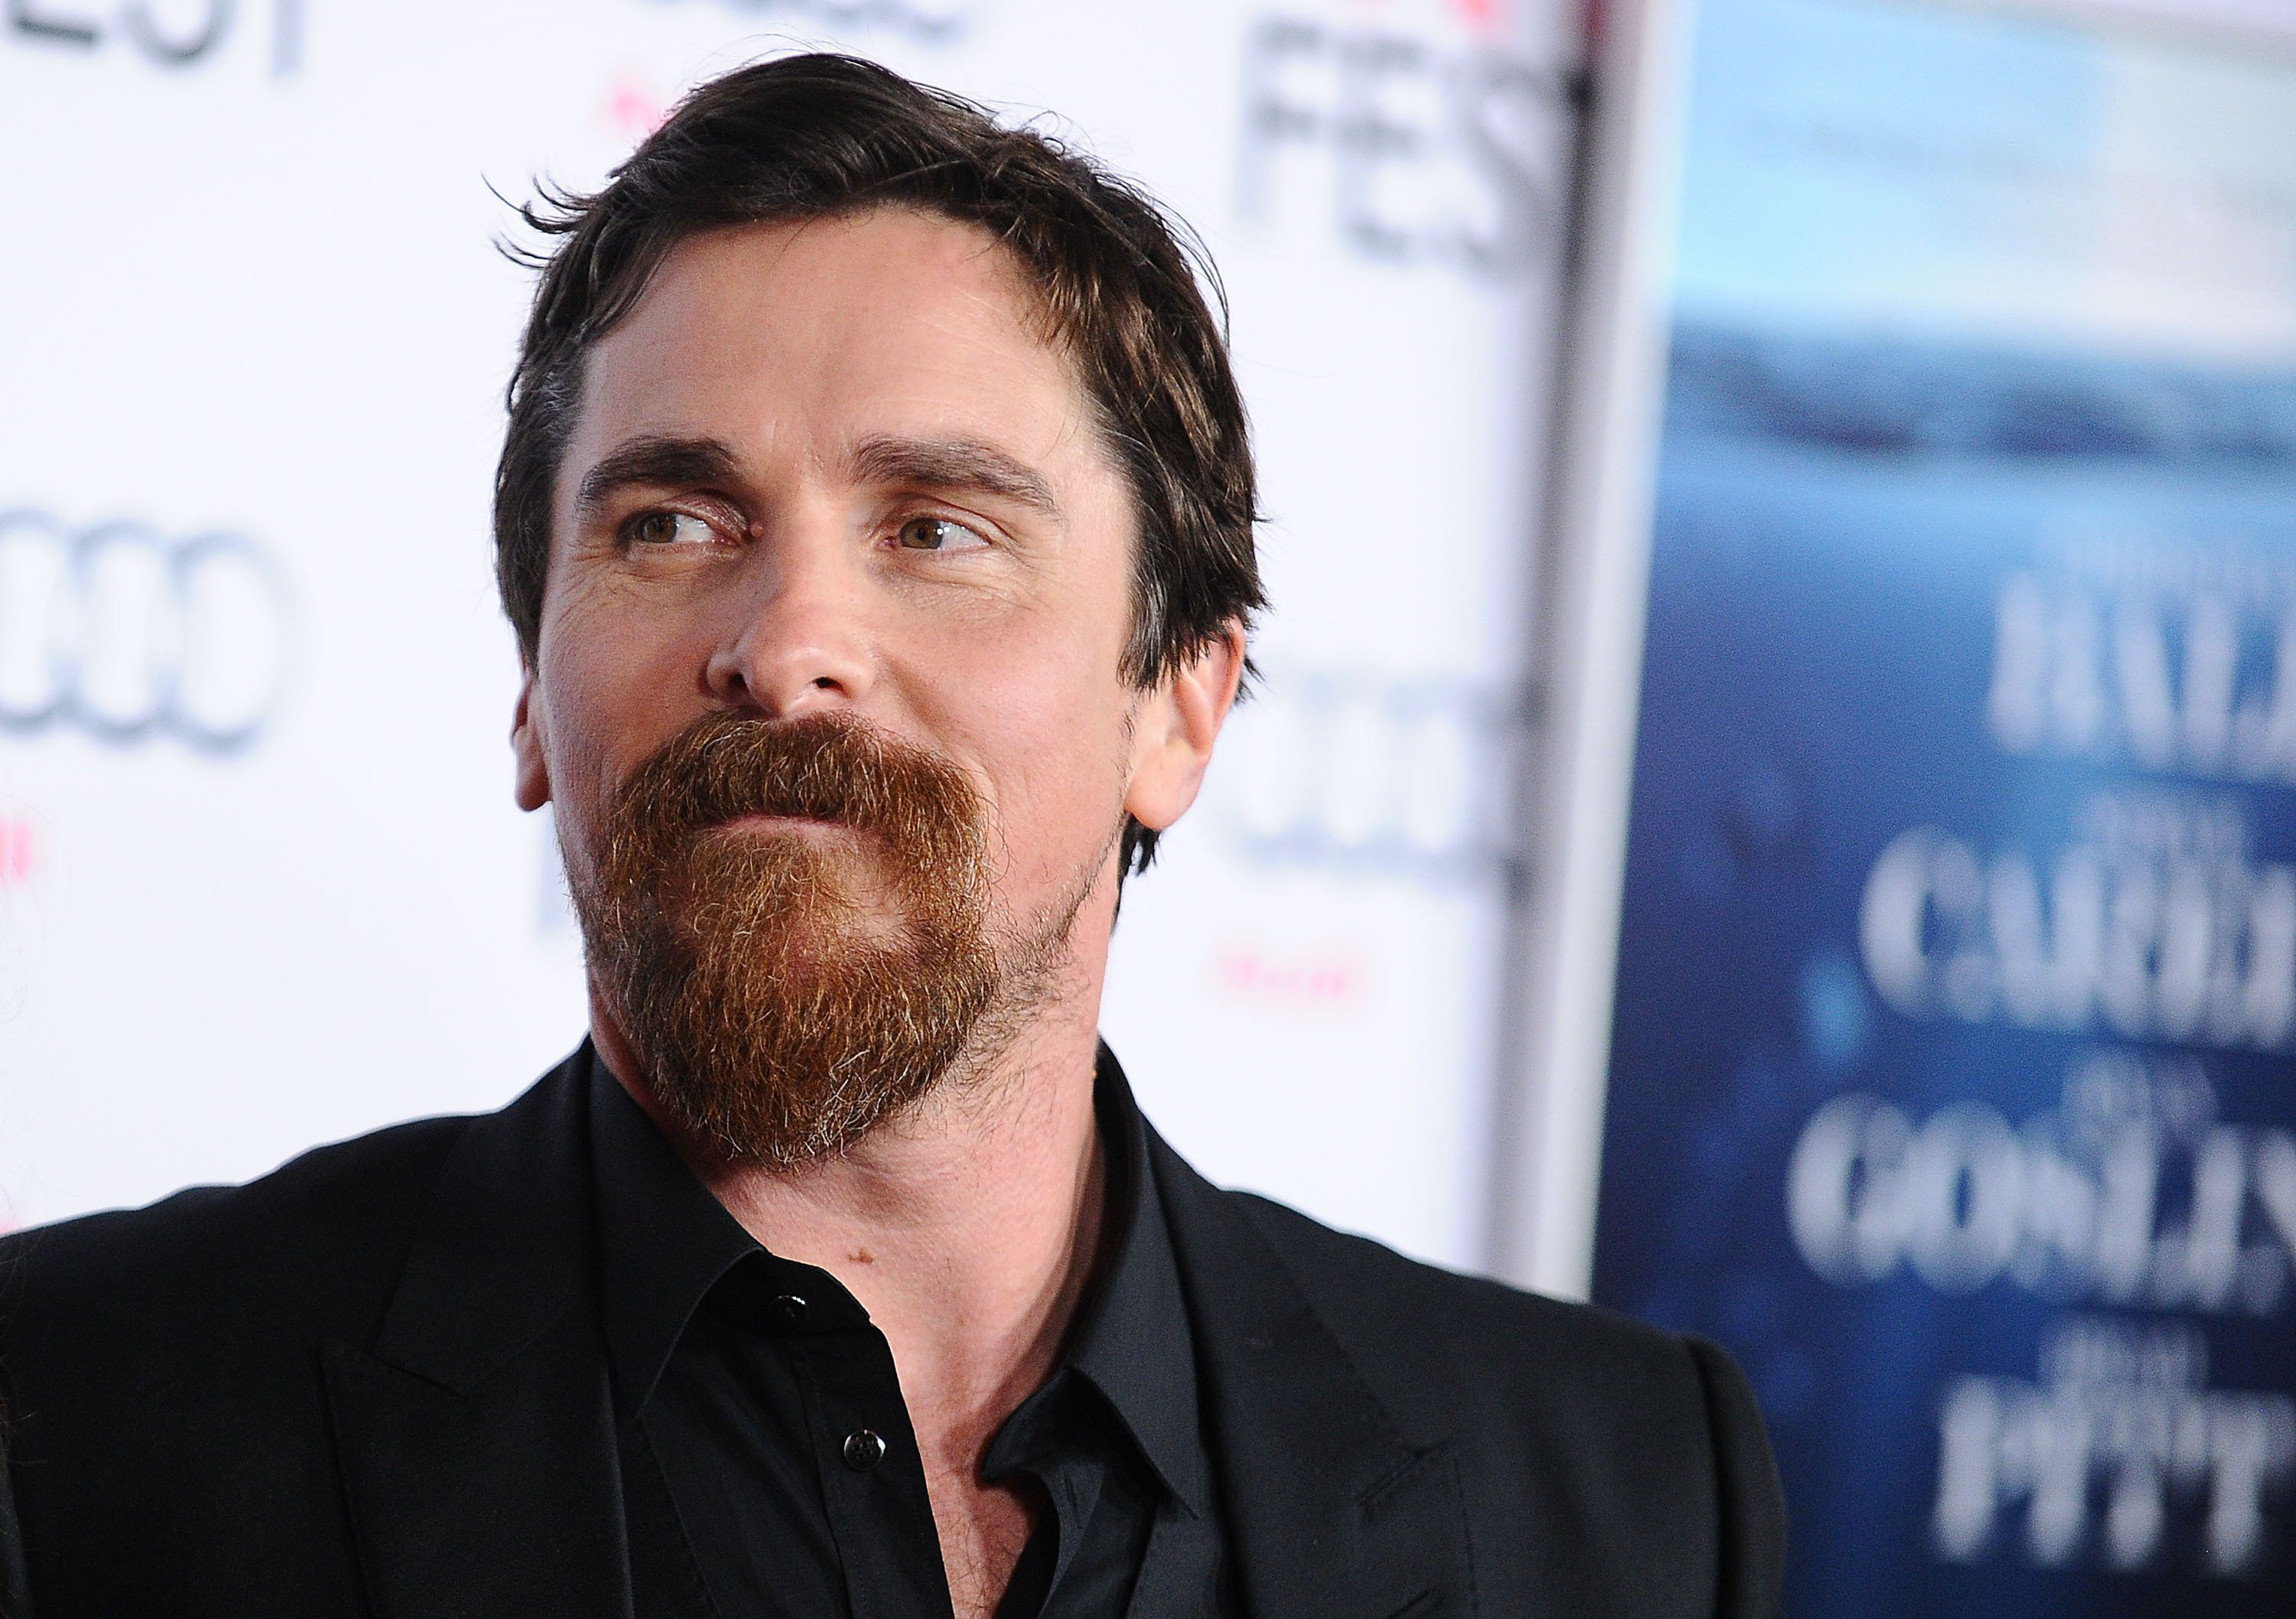 HOLLYWOOD, CA - NOVEMBER 12:  Actor Christian Bale attends the premire of 'The Big Short' at the 2015 AFI Fest at TCL Chinese 6 Theatres on November 12, 2015 in Hollywood, California.  (Photo by Jason LaVeris/FilmMagic)